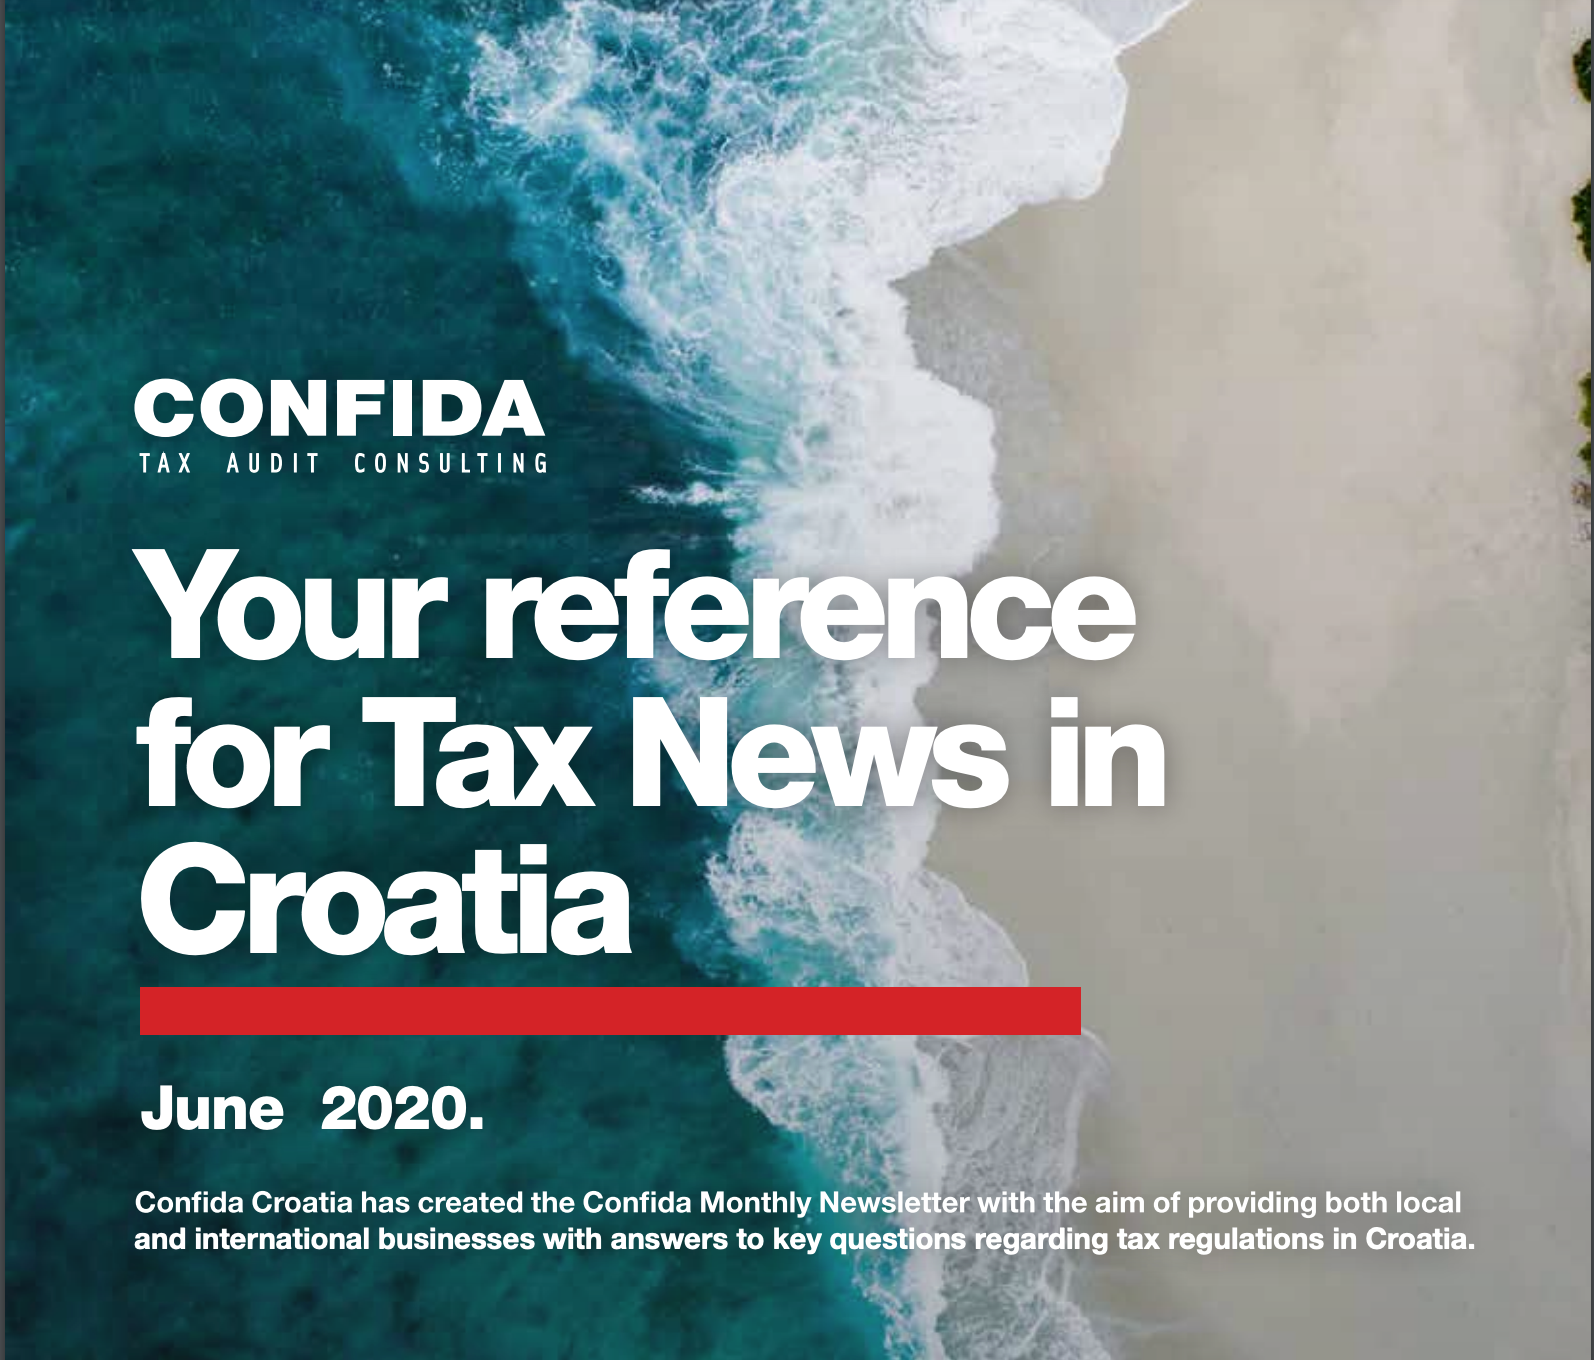 June 2020: Your reference for Tax News in Croatia